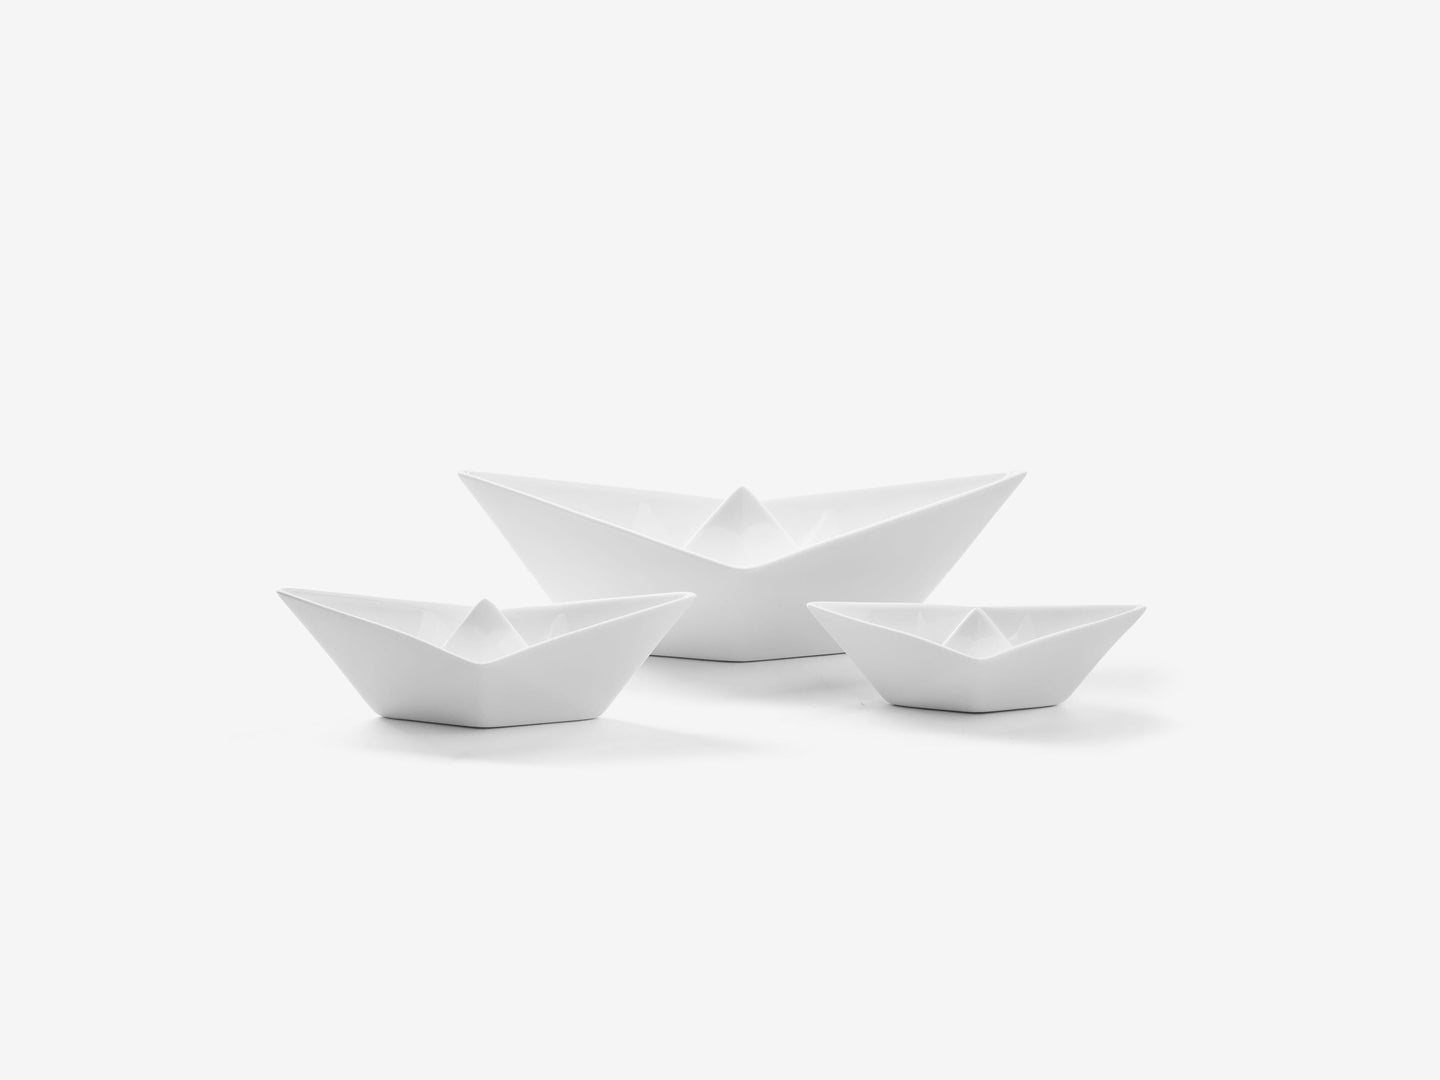 Memorabillia My Boats – set of 3